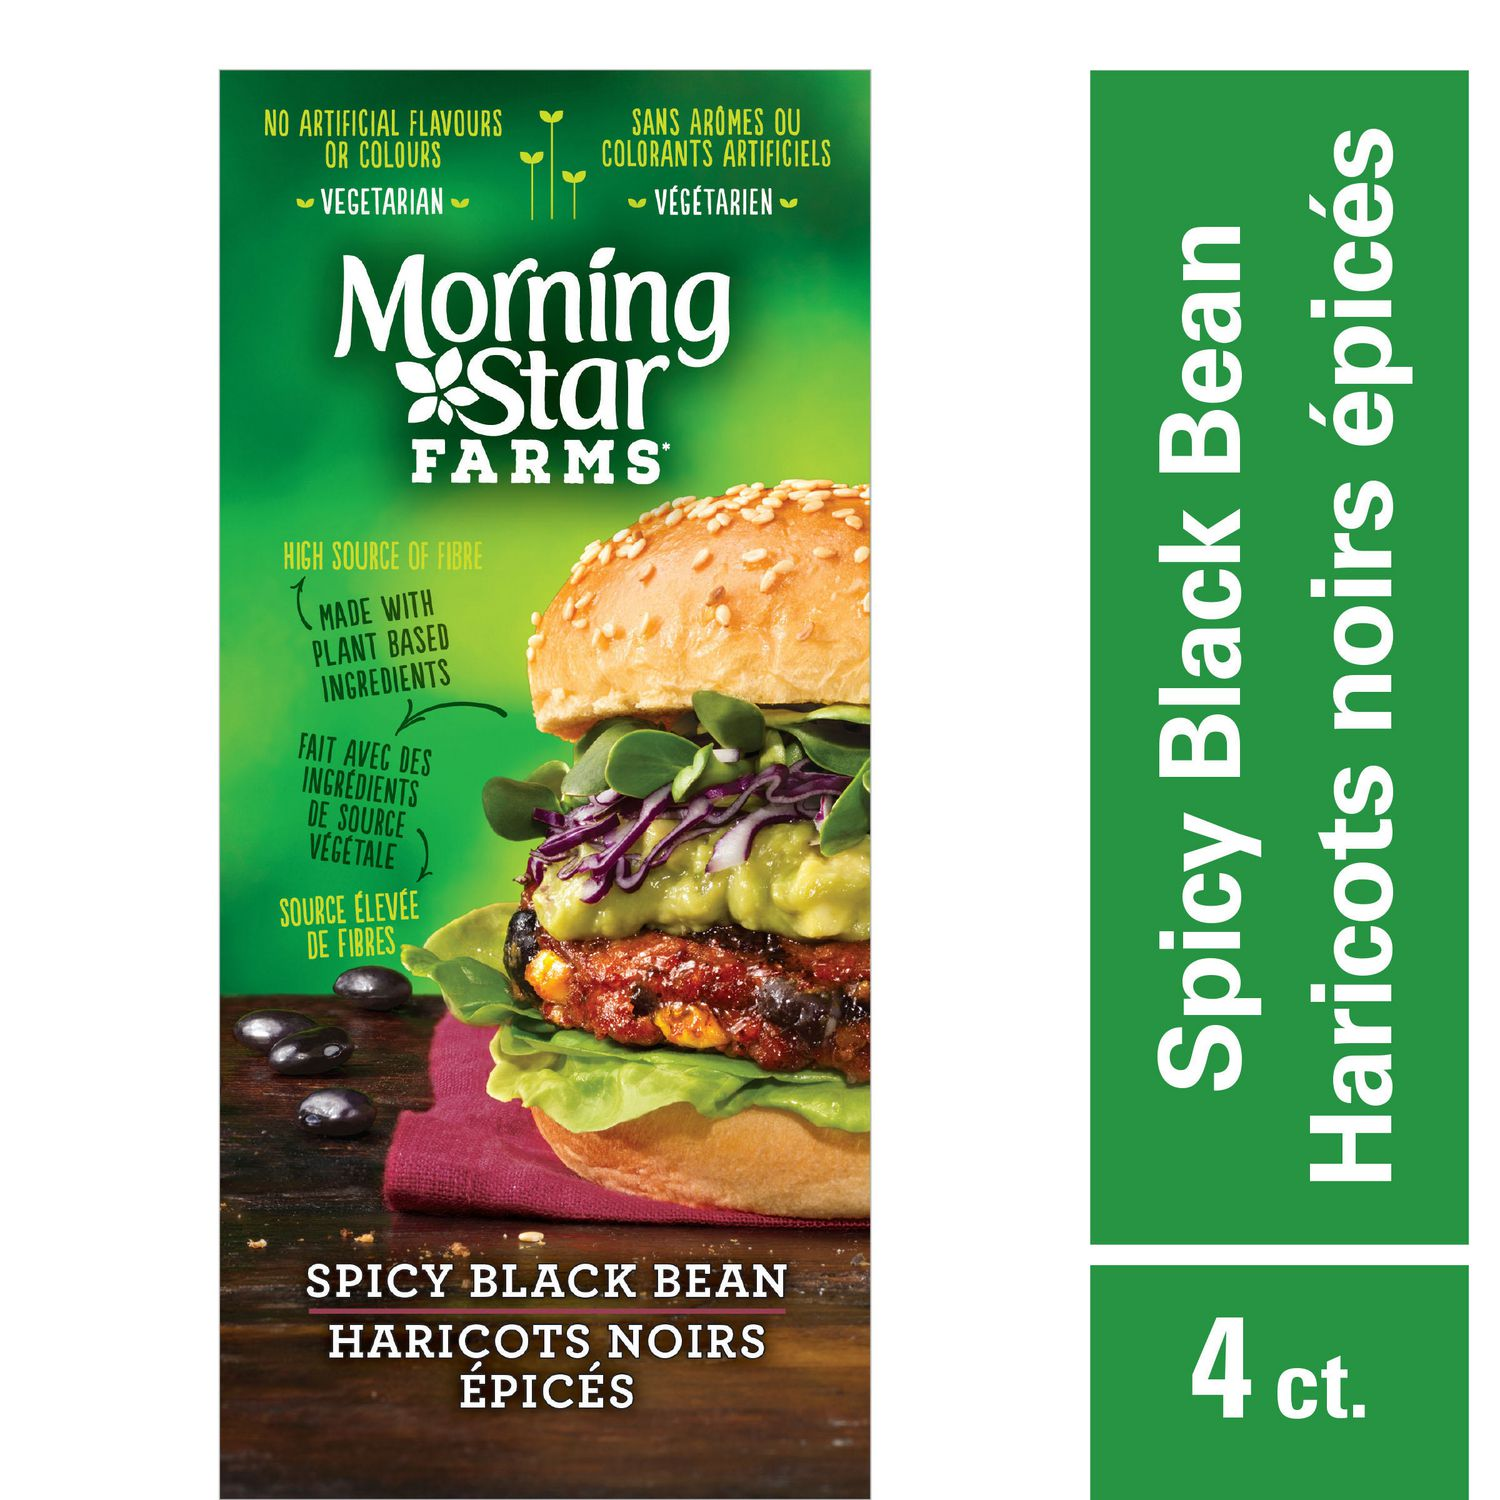 morning star chipotle black bean burgers